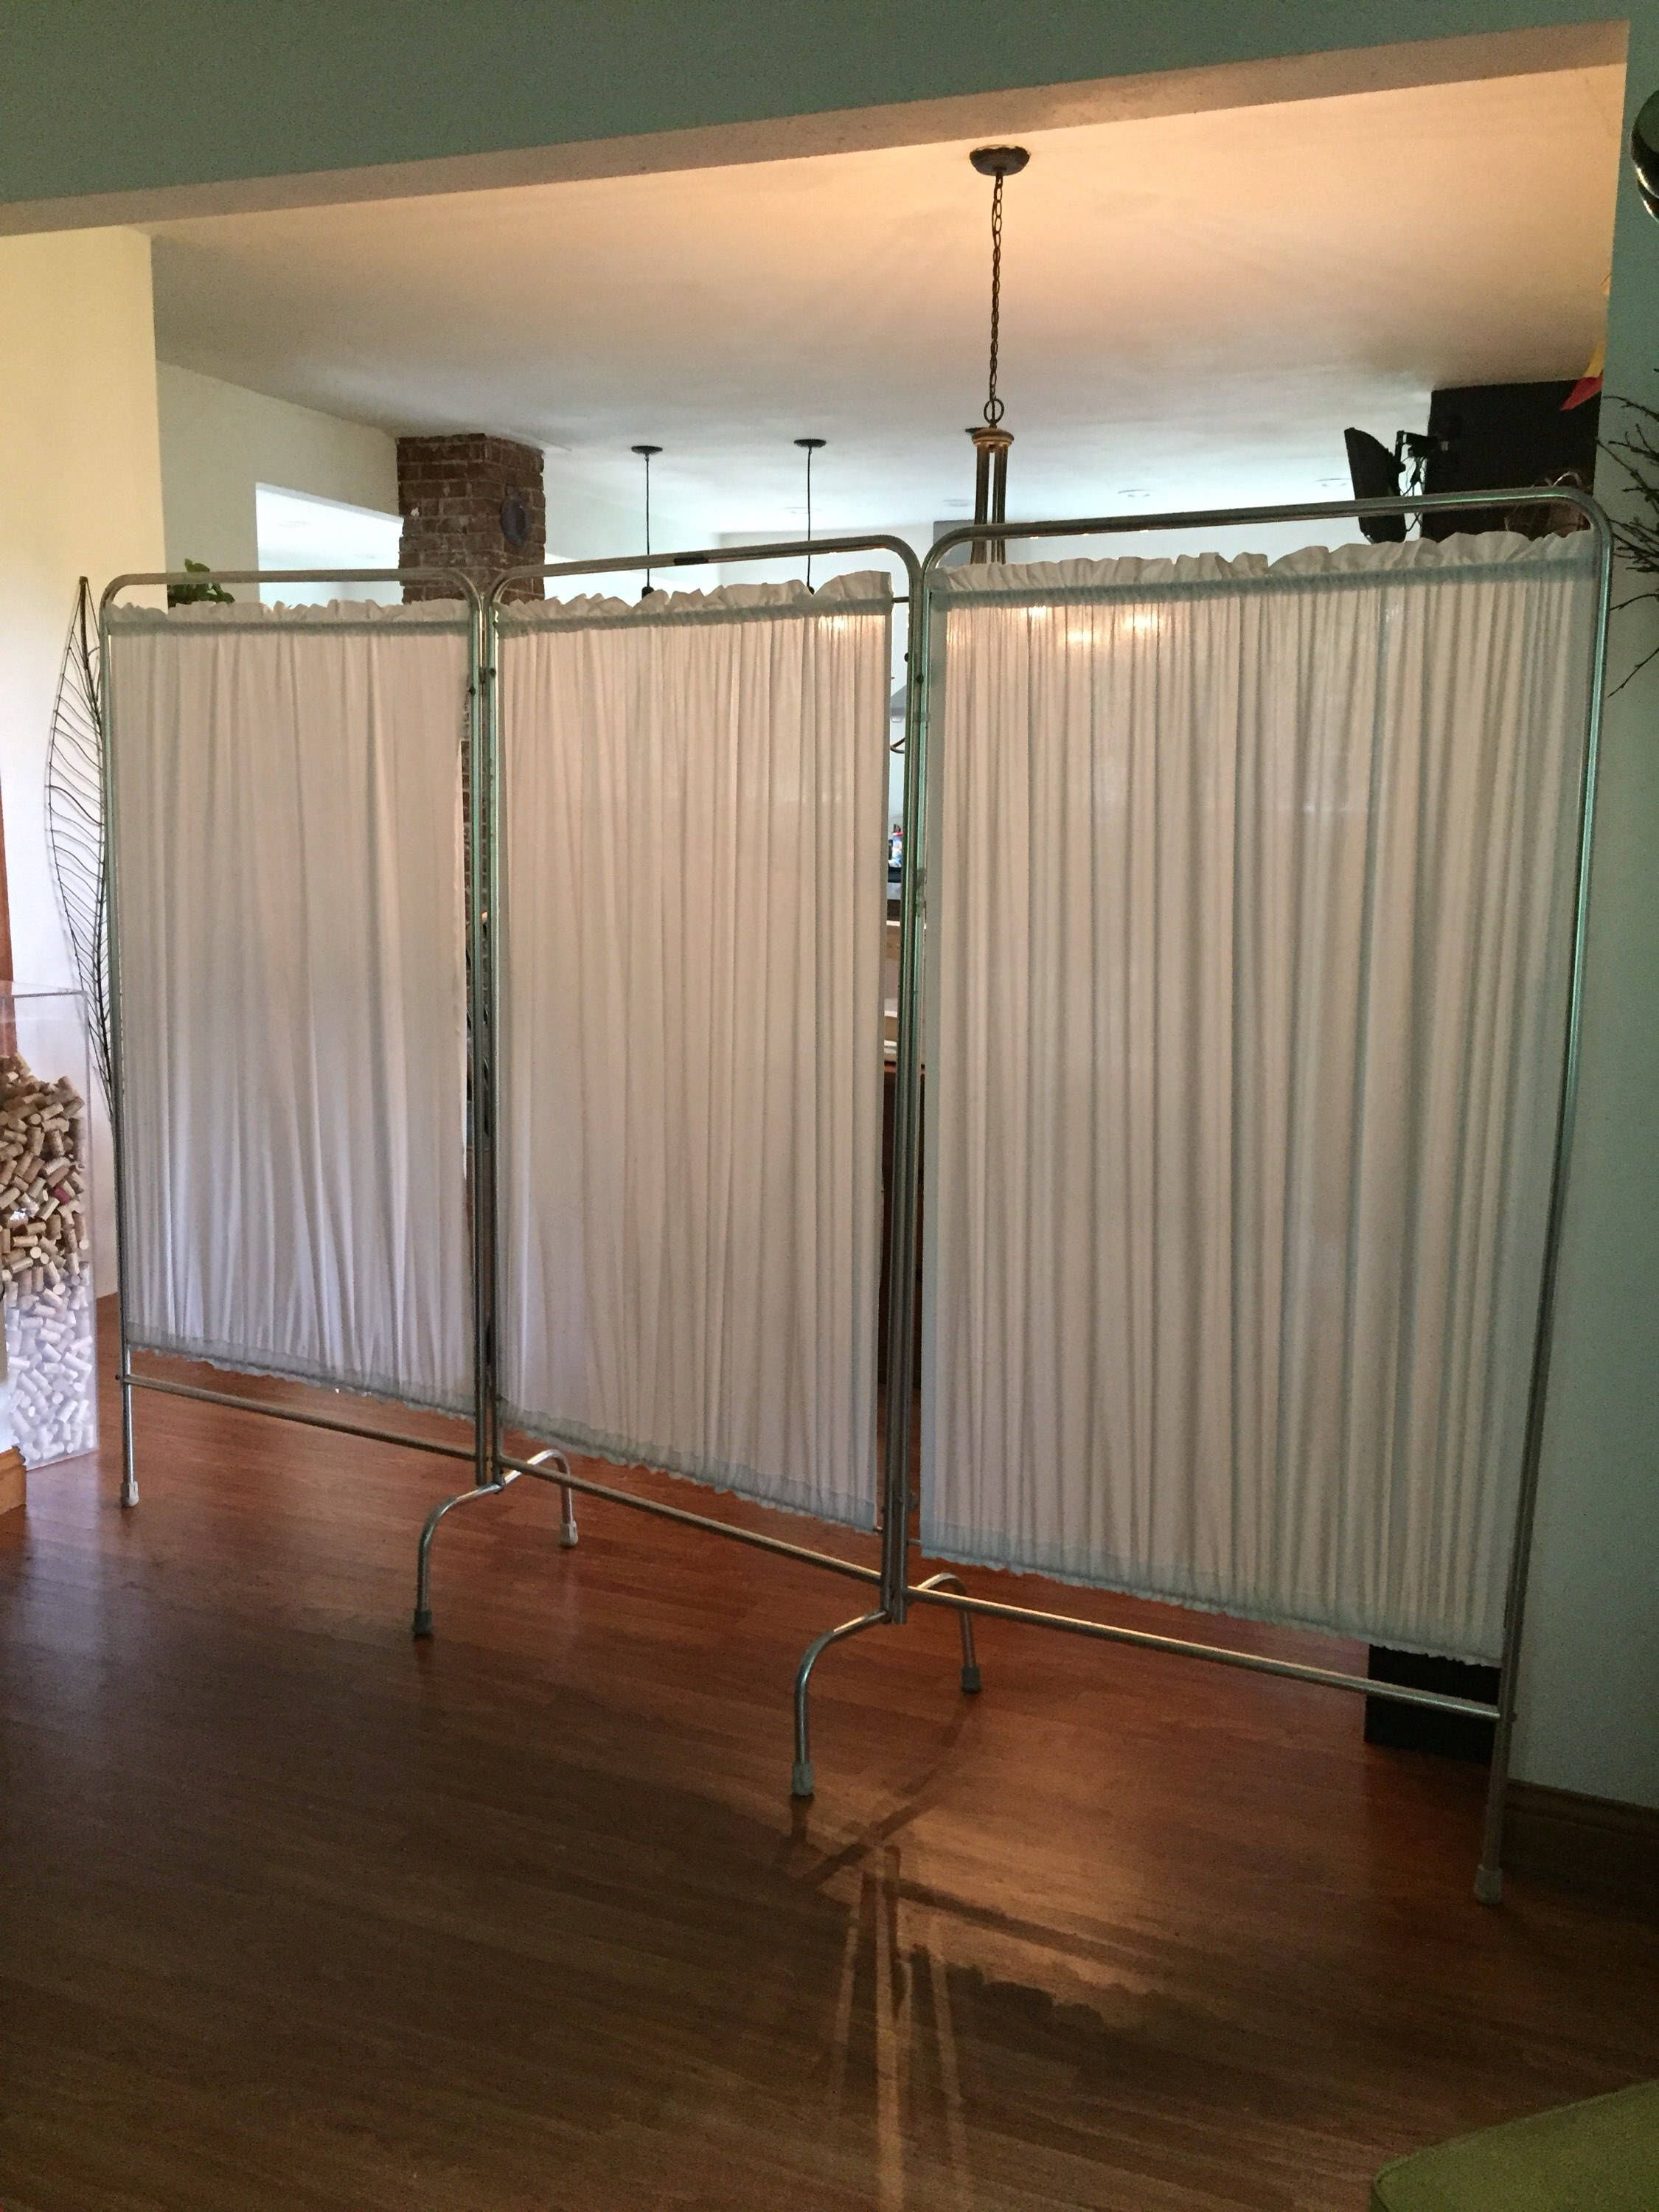 Antique Hospital Room Divider Screeen Medical Supply Room Divider Privacy Screen Aluminum Folding Screen By Room Divider Glass Room Divider Bamboo Room Divider